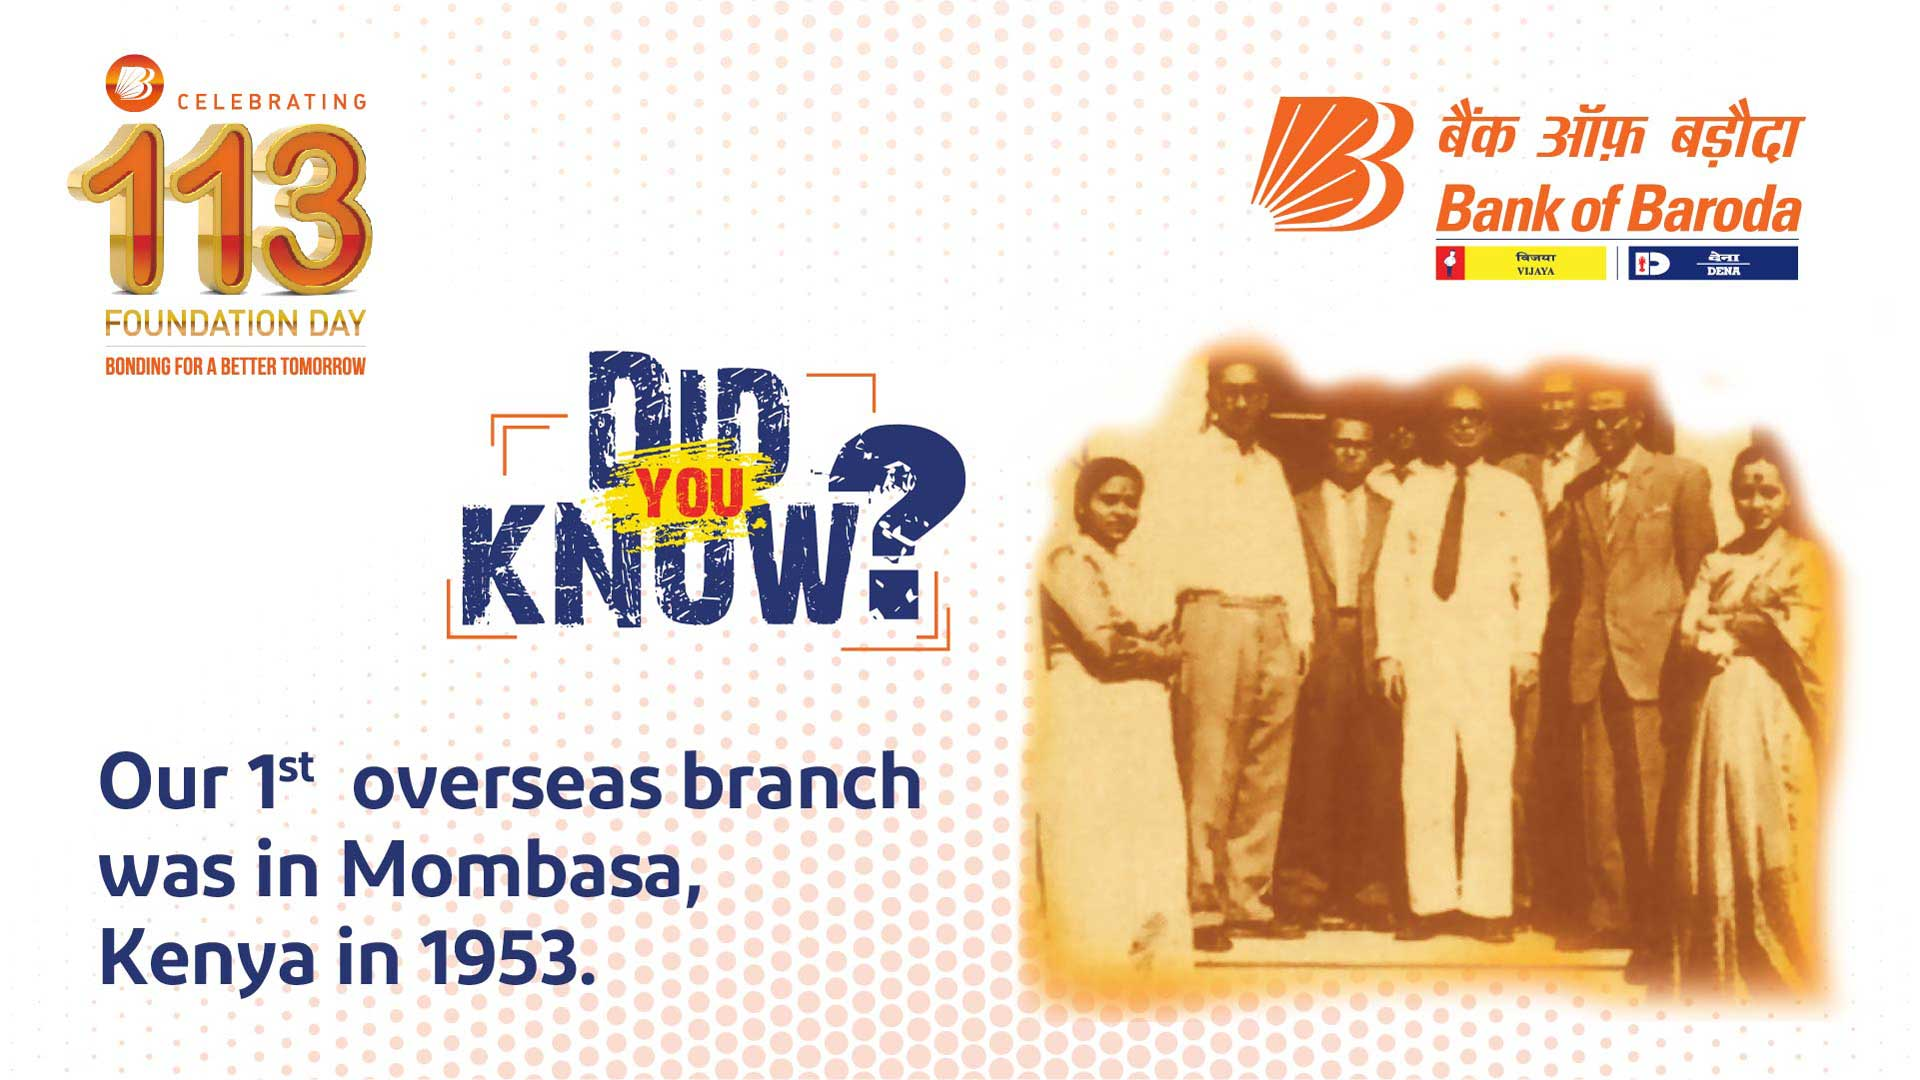 Did You Know? - Bank of Baroda was the first brand as National Supporter of FIFA U-17 World Cup India 2017